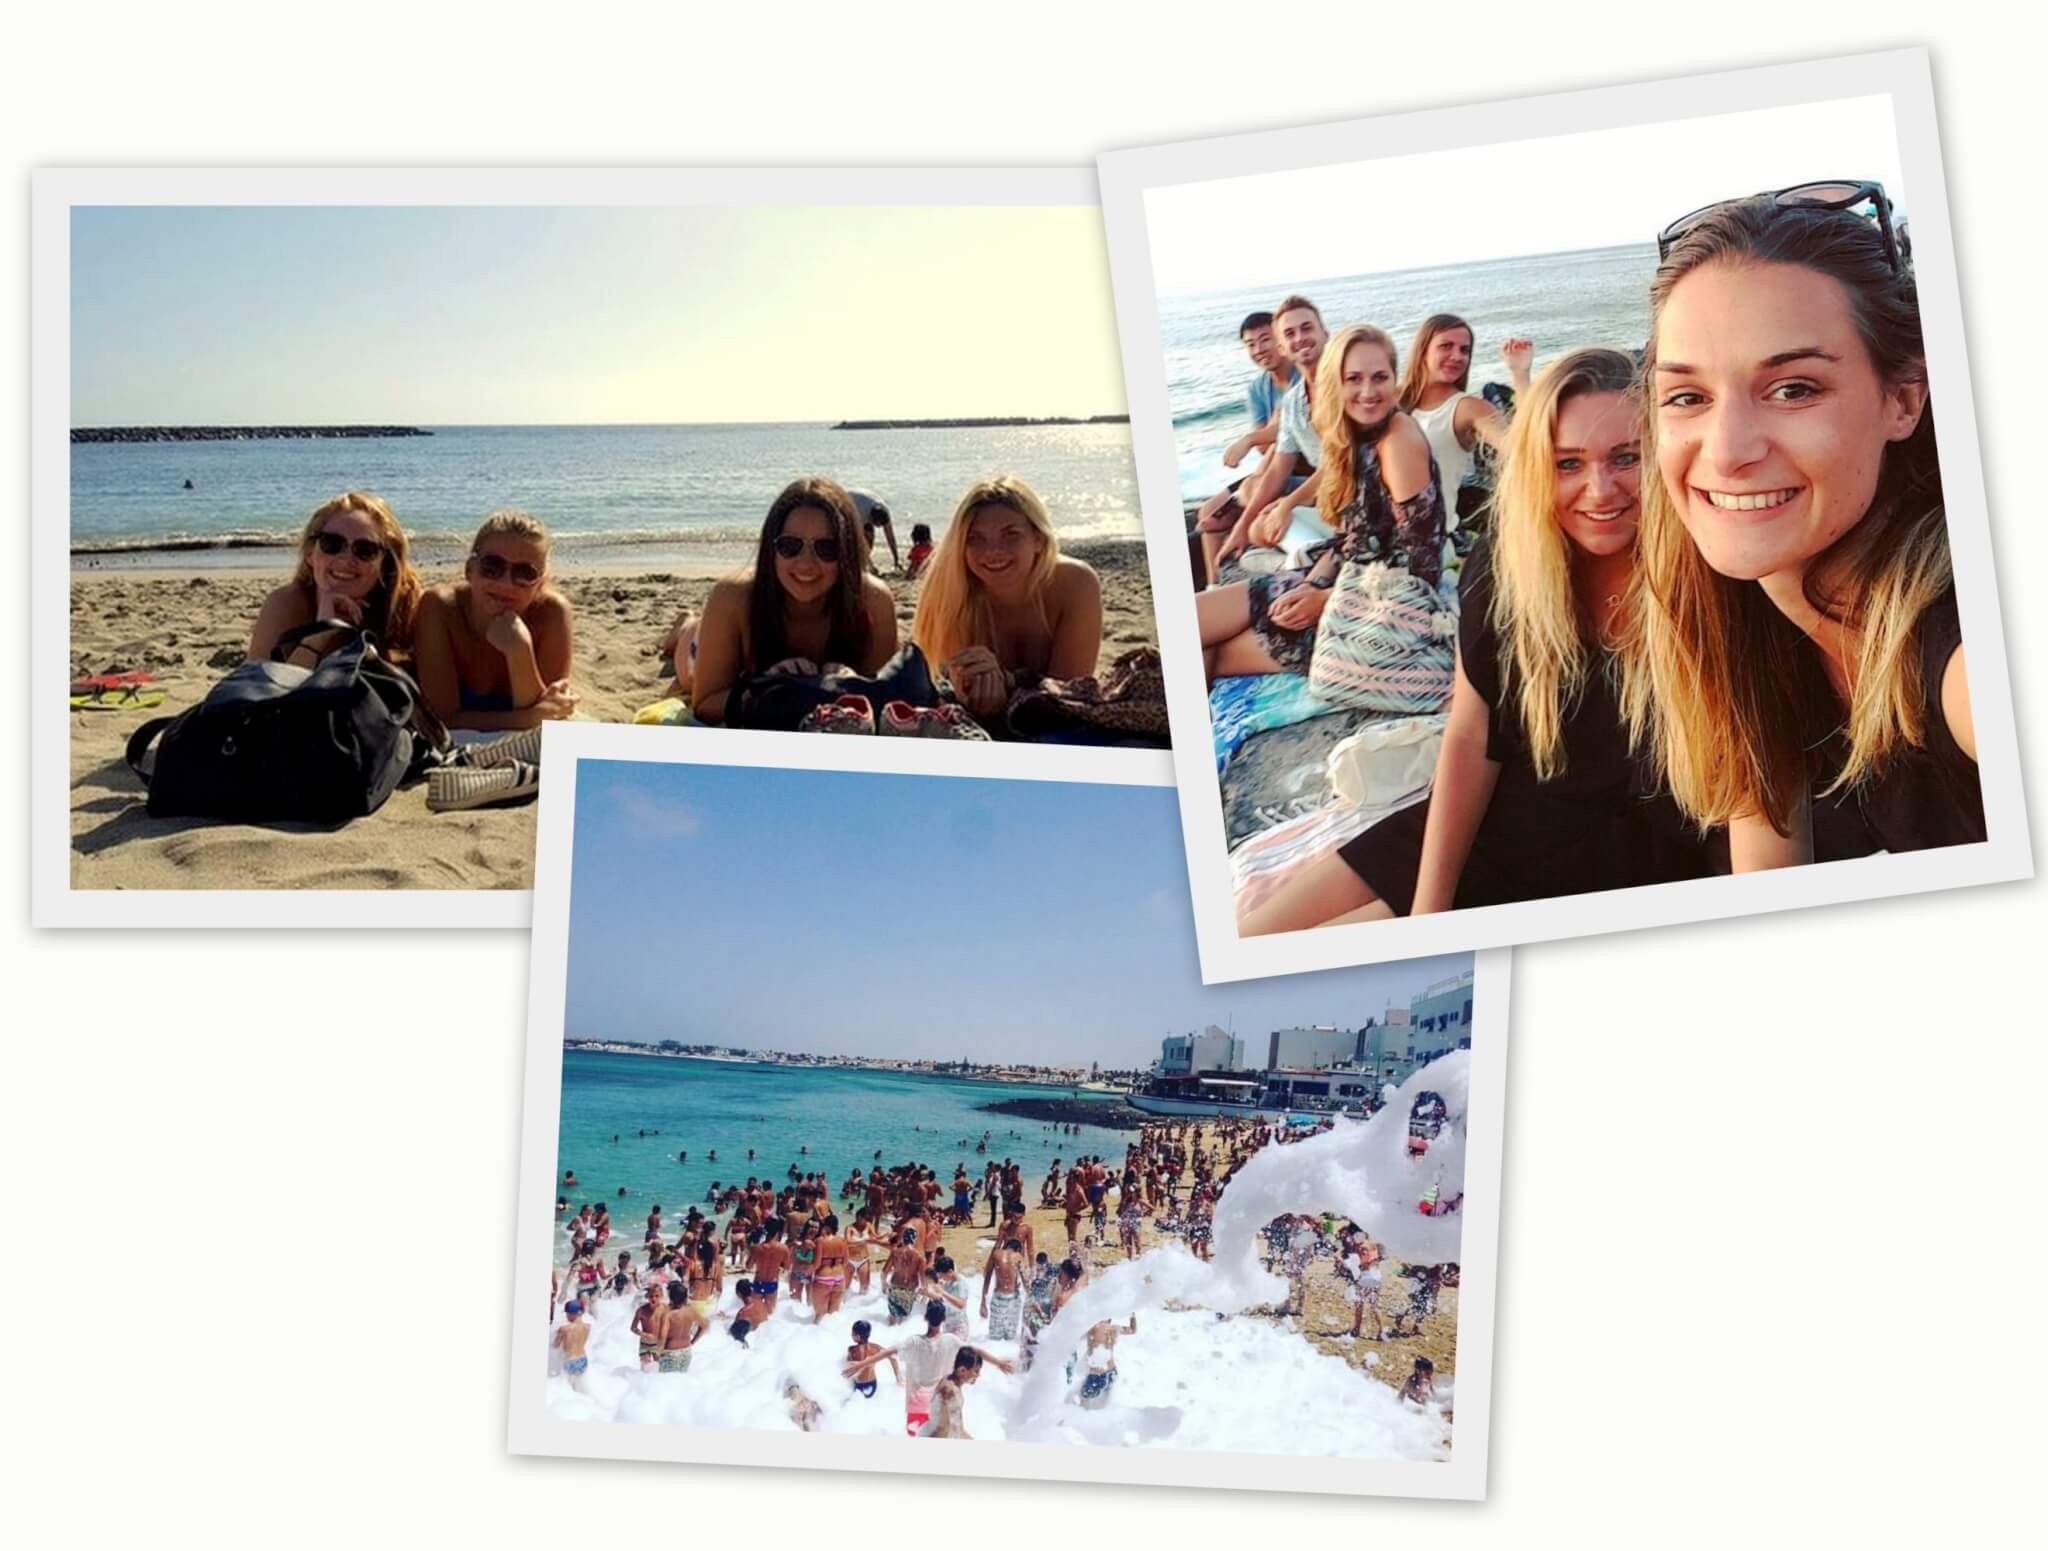 Our interns having fun during their Internships on the Canary Islands, here Tenerife